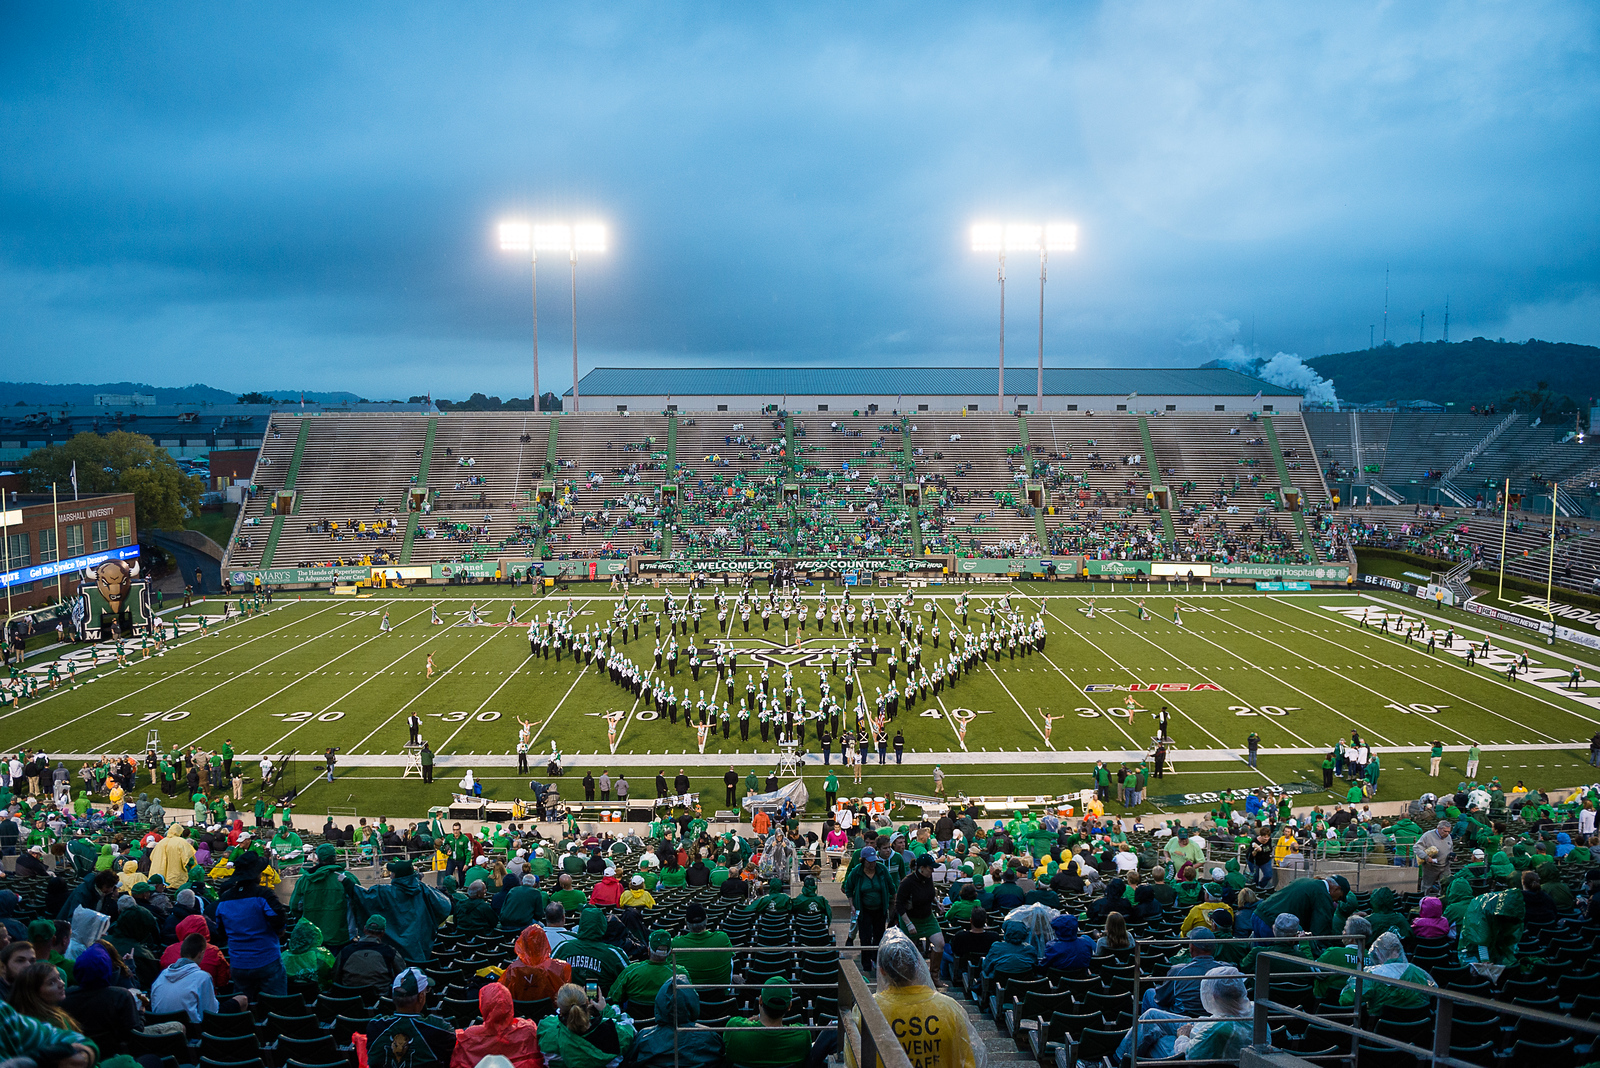 Marshall University football vs. Southern Mississippi University at Joan C. Edwards Stadium on the campus of Marshall University in Huntington, WV.  October 9, 2015.  (J. Alex Wilson)